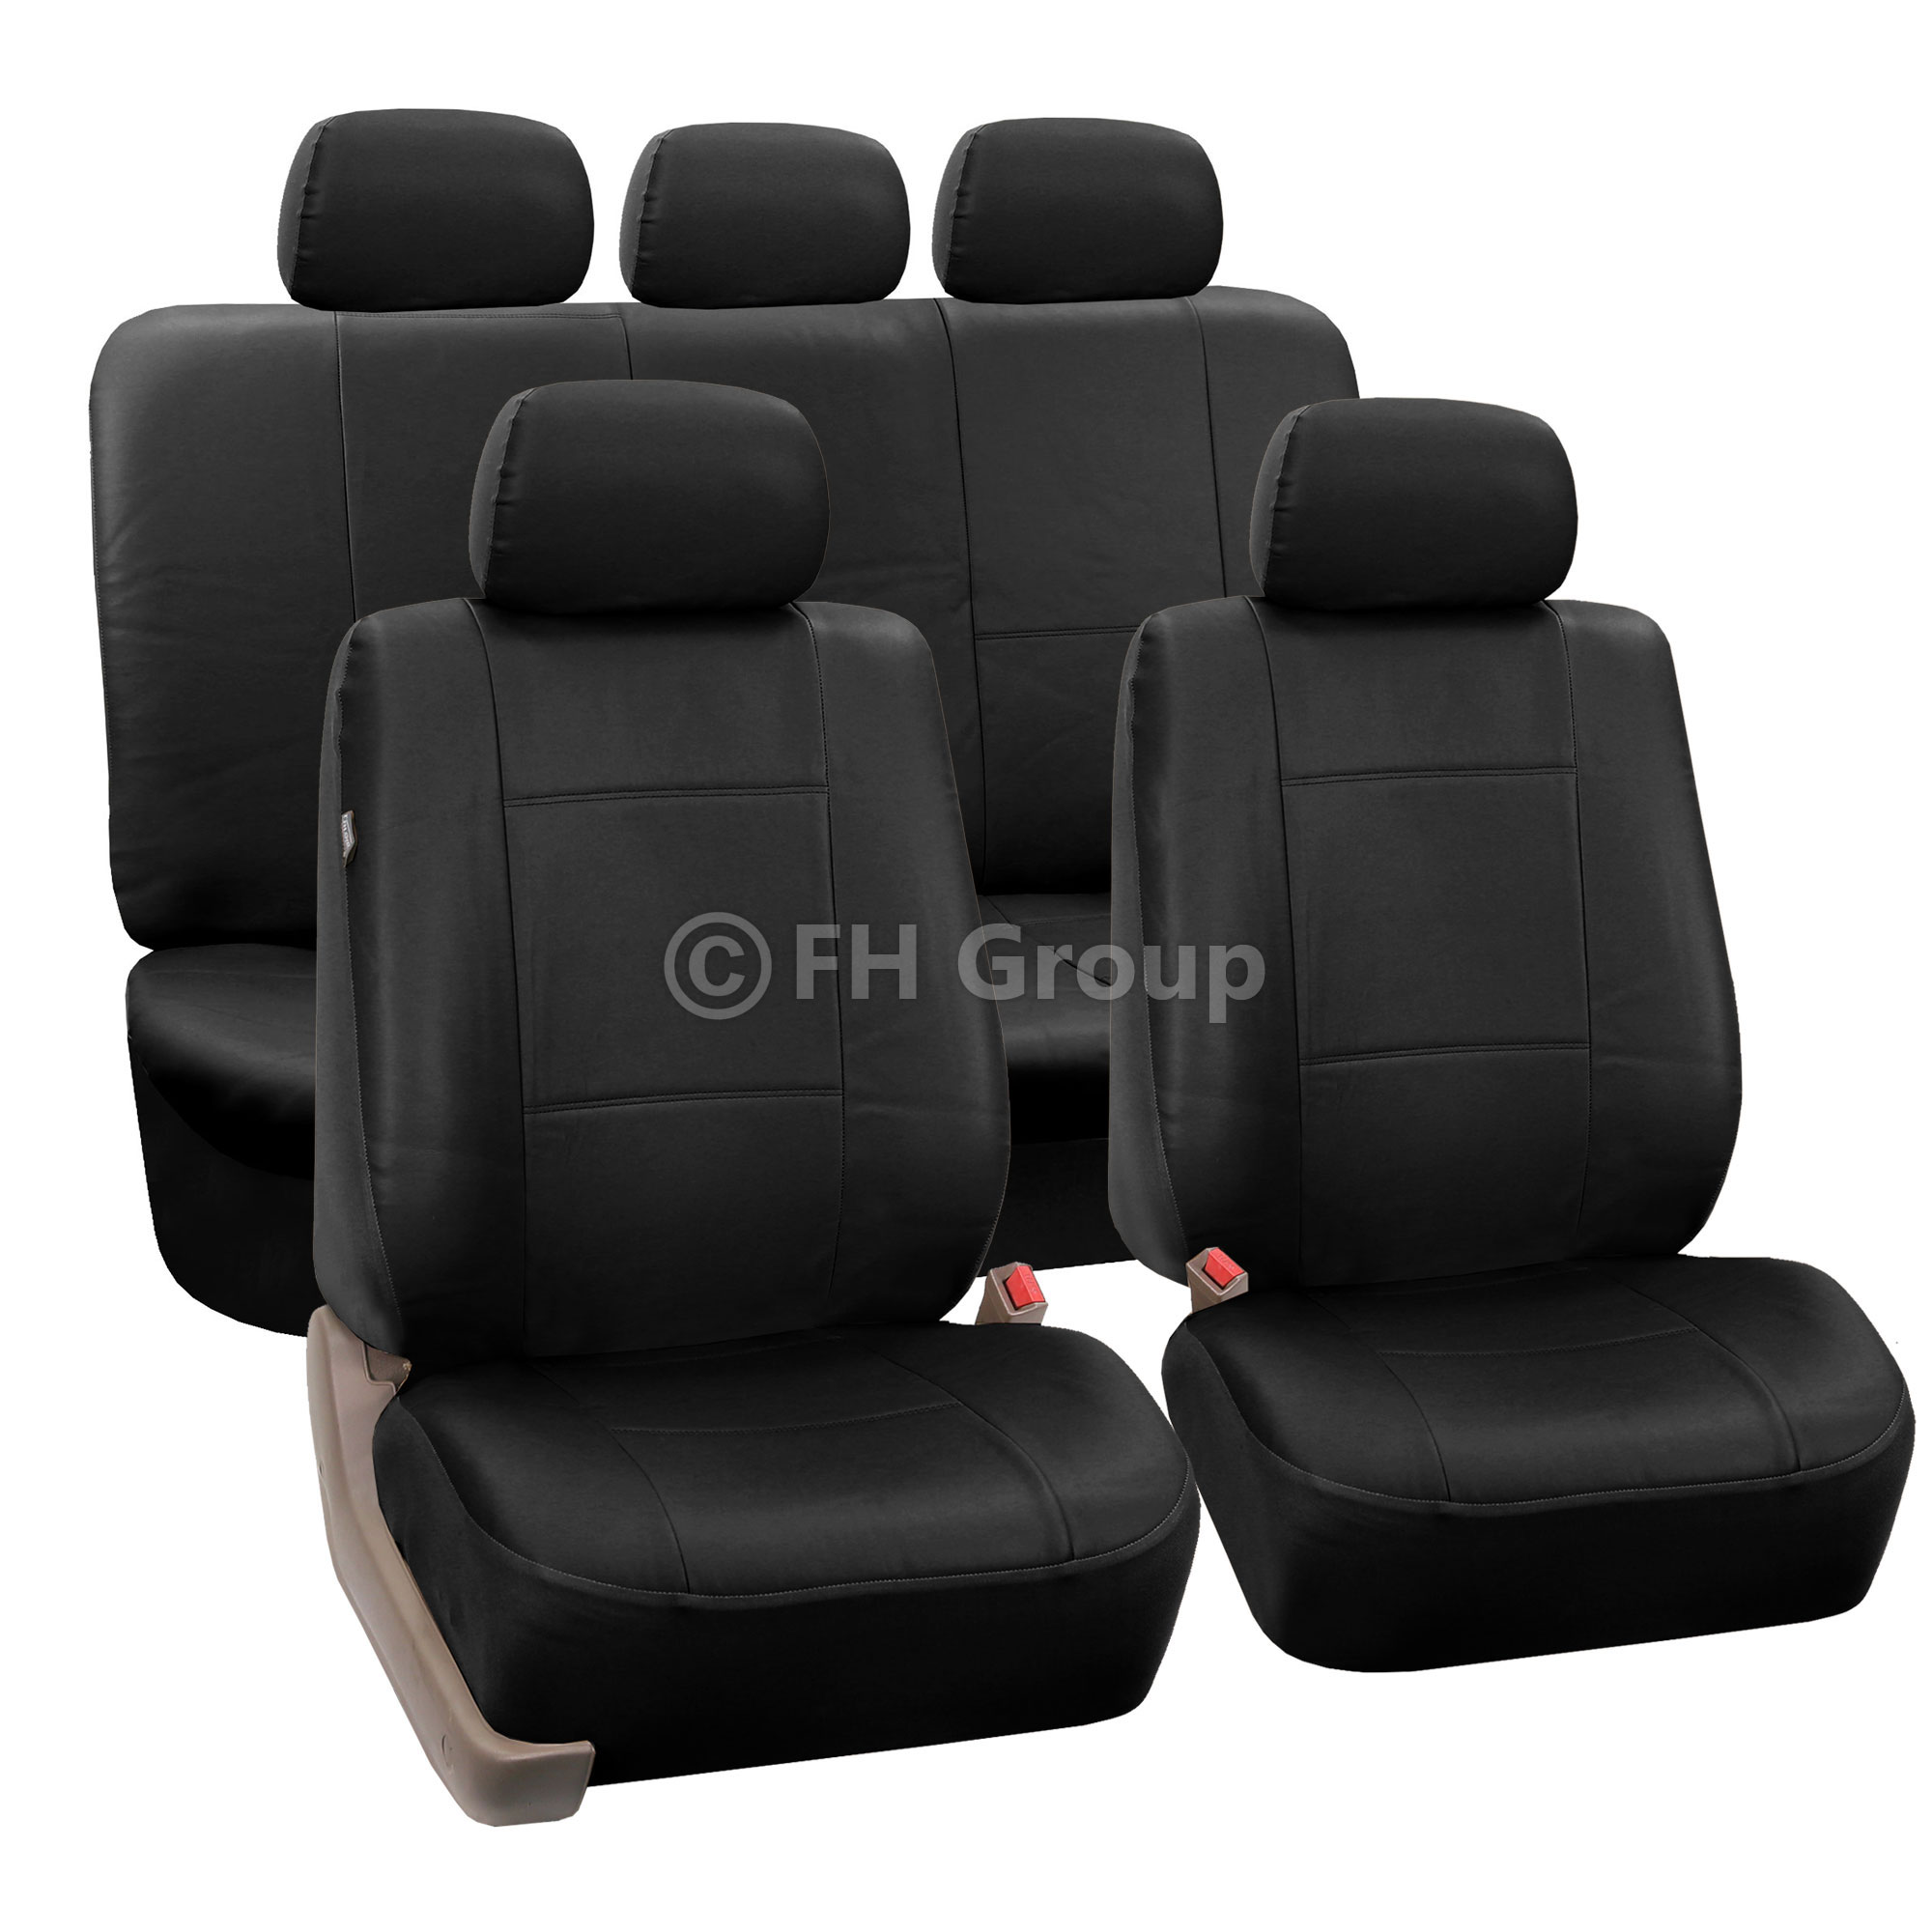 cover chair seat car antique ladder back chairs value pu leather covers w carpet floor mats for split